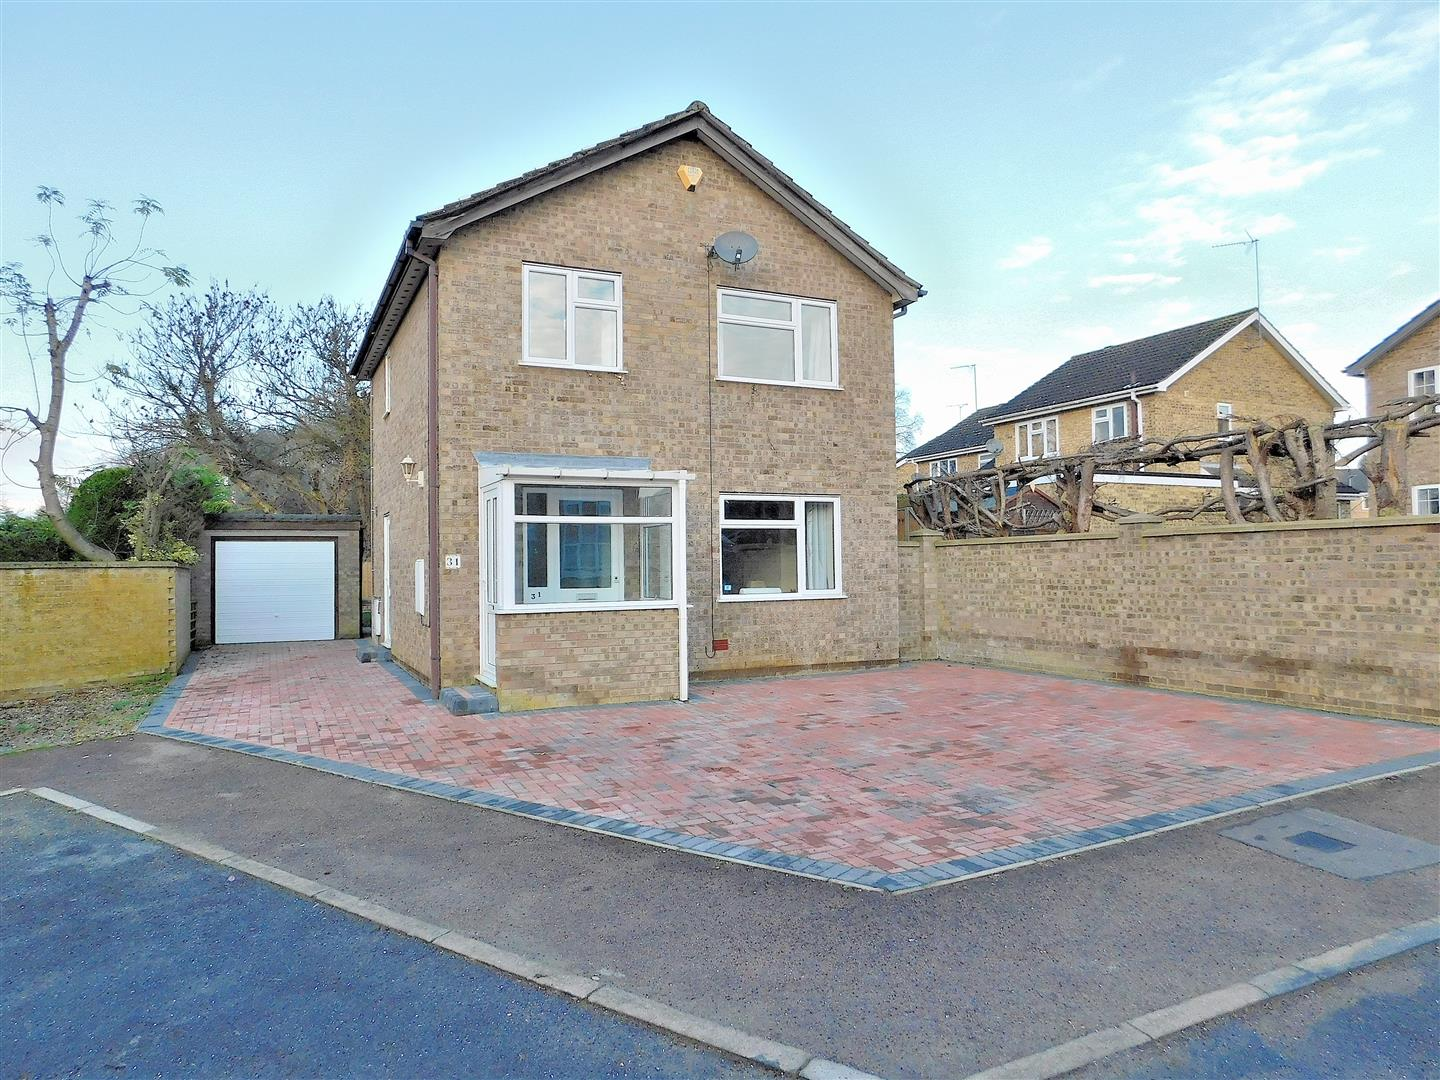 3 bed detached house for sale in King's Lynn, PE30 3UF, PE30